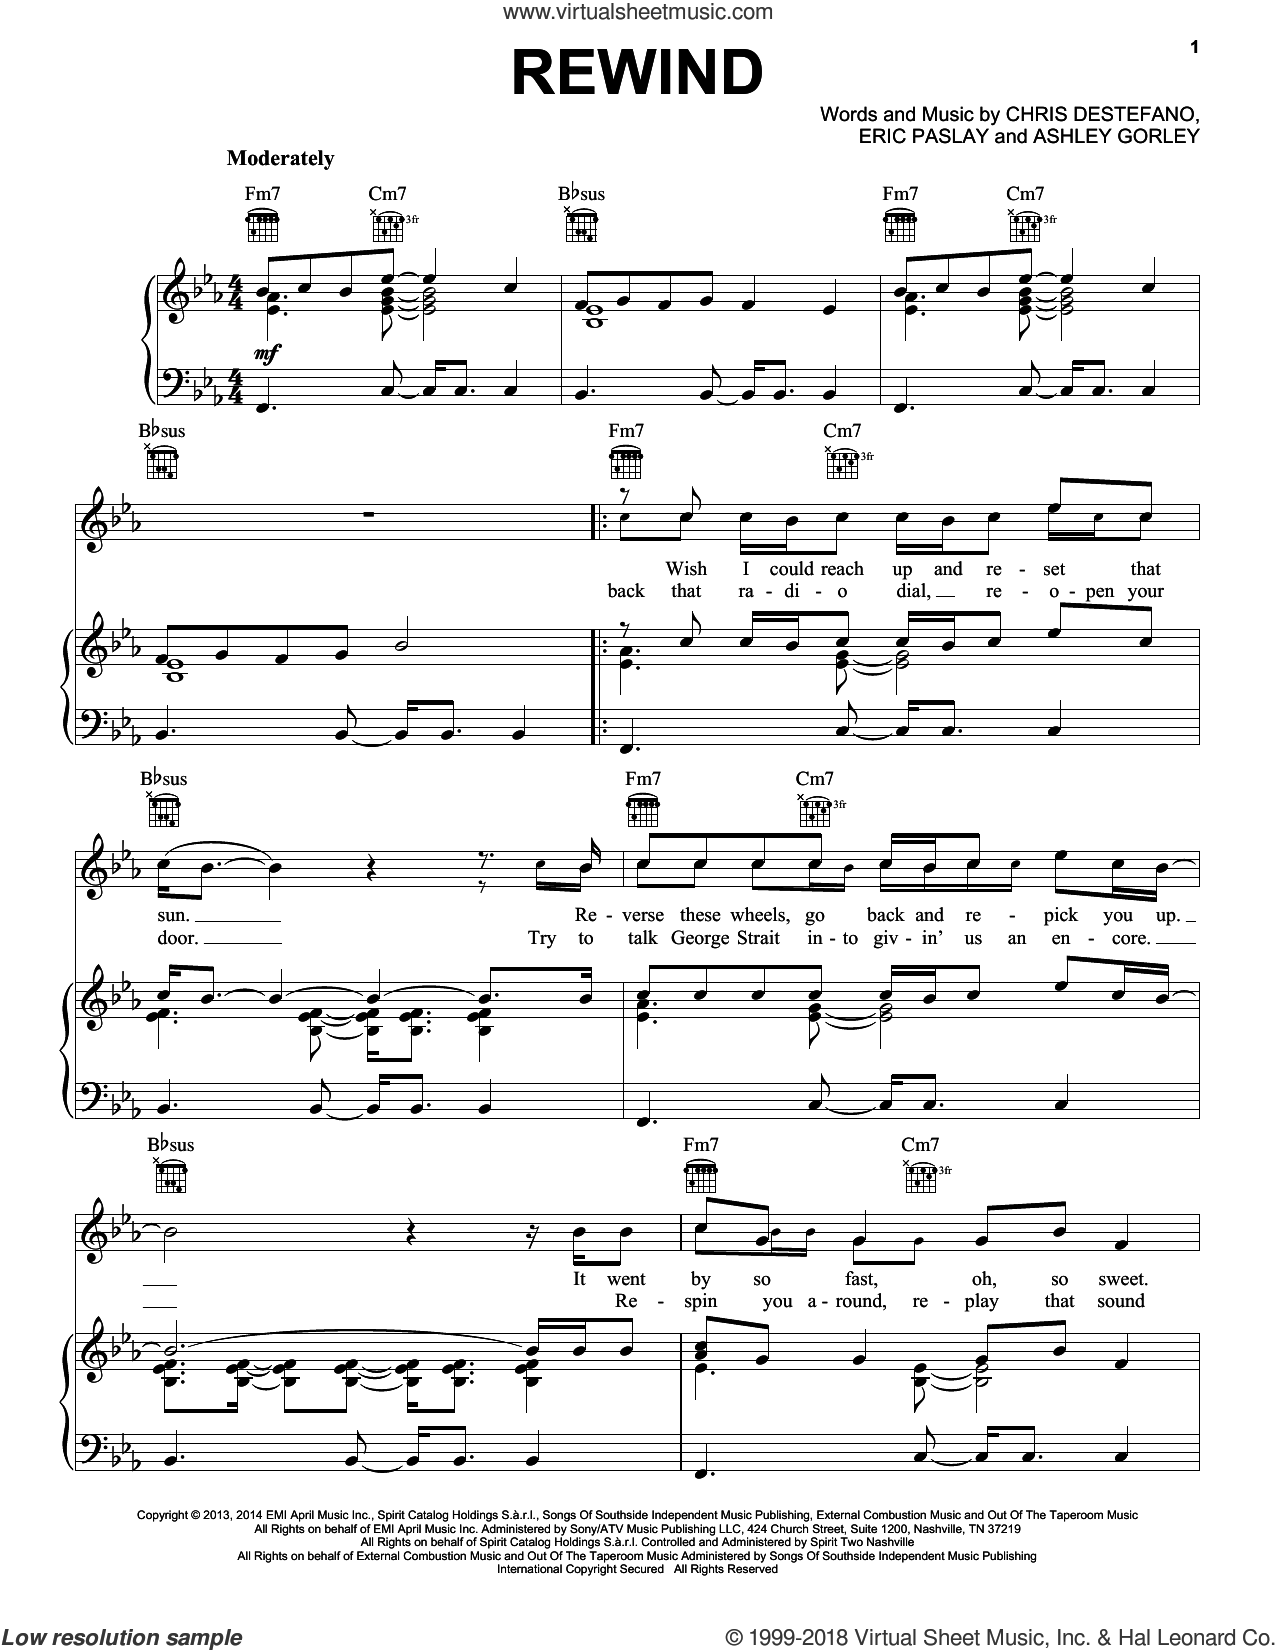 Rewind sheet music for voice, piano or guitar by Rascal Flatts, Ashley Gorley, Chris Destefano and Eric Paslay. Score Image Preview.